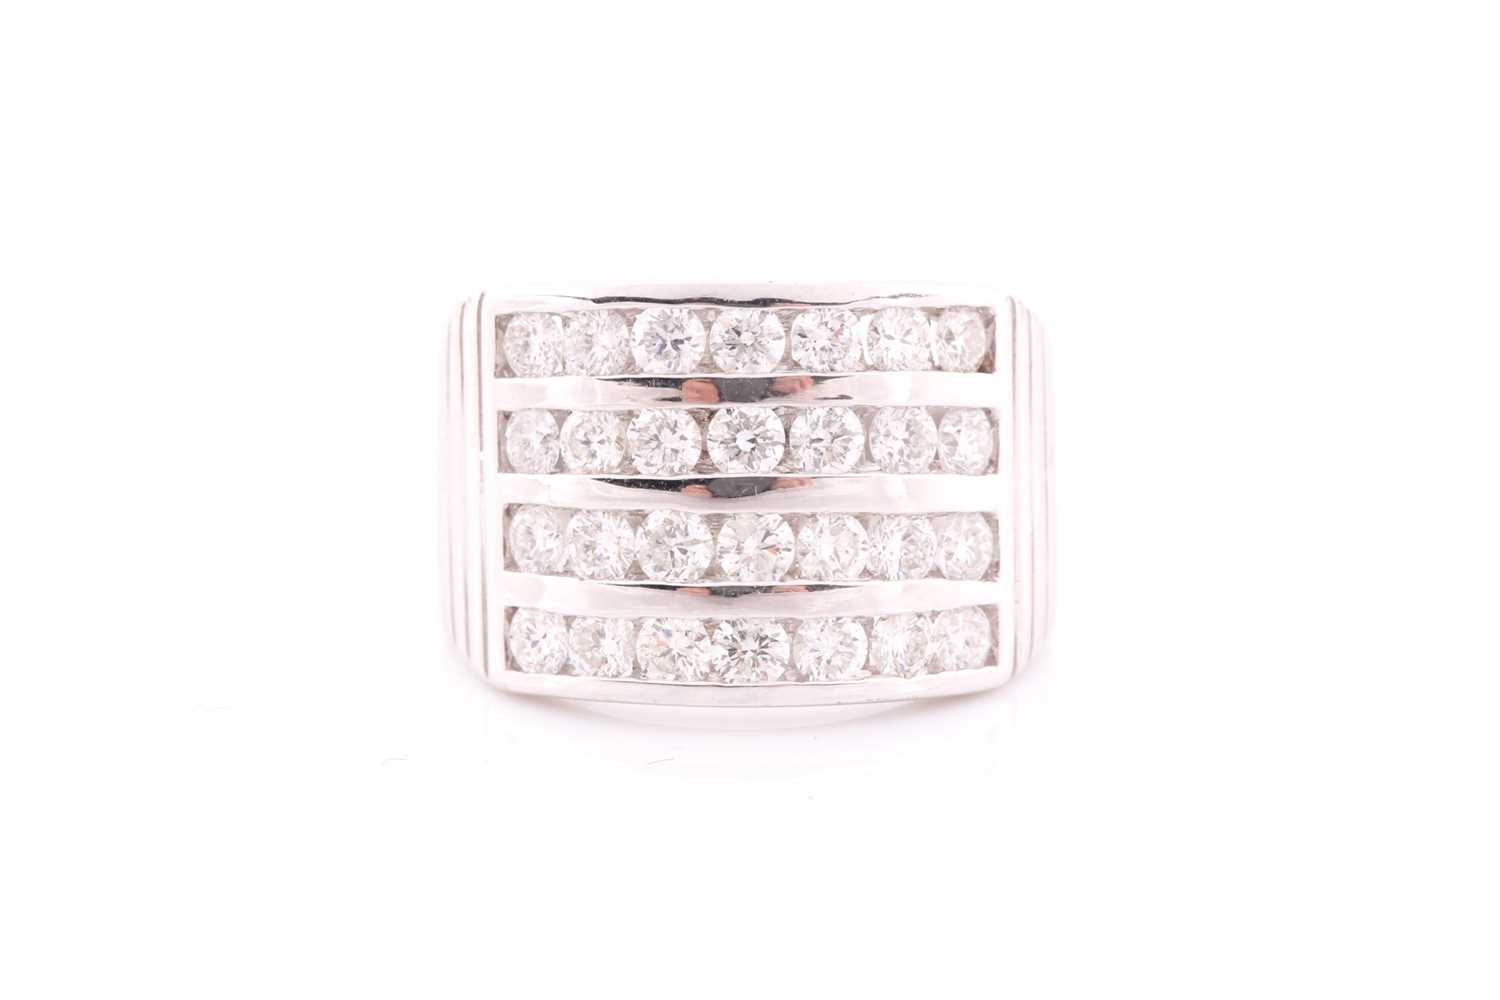 A diamond band ring, channel-set with four rows of round brilliant-cut diamonds of approximately 2.